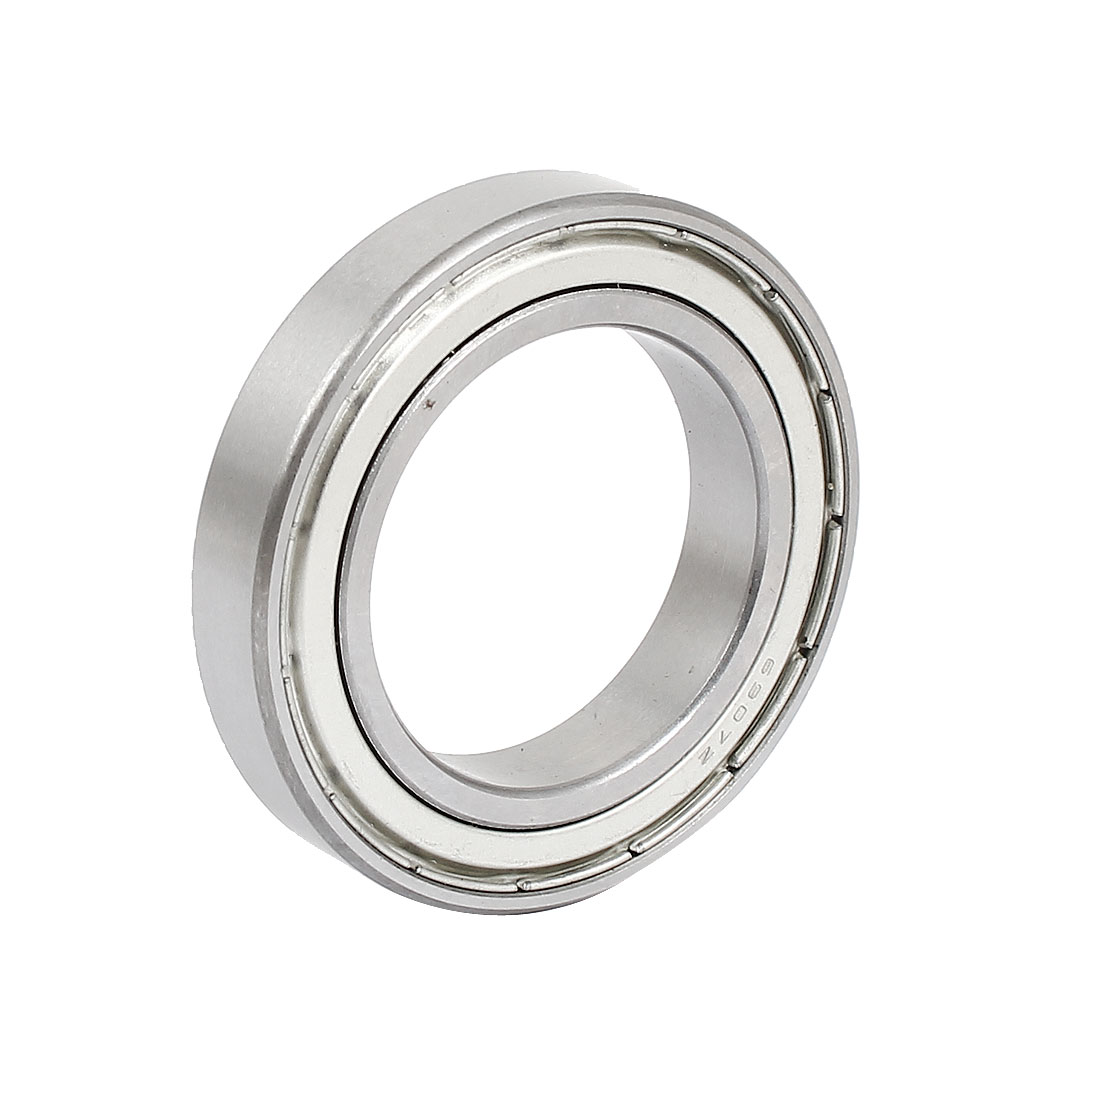 55mm x 35mm x 10mm 69072 Double Sealed Carbon Steel Upper Roller Bearing